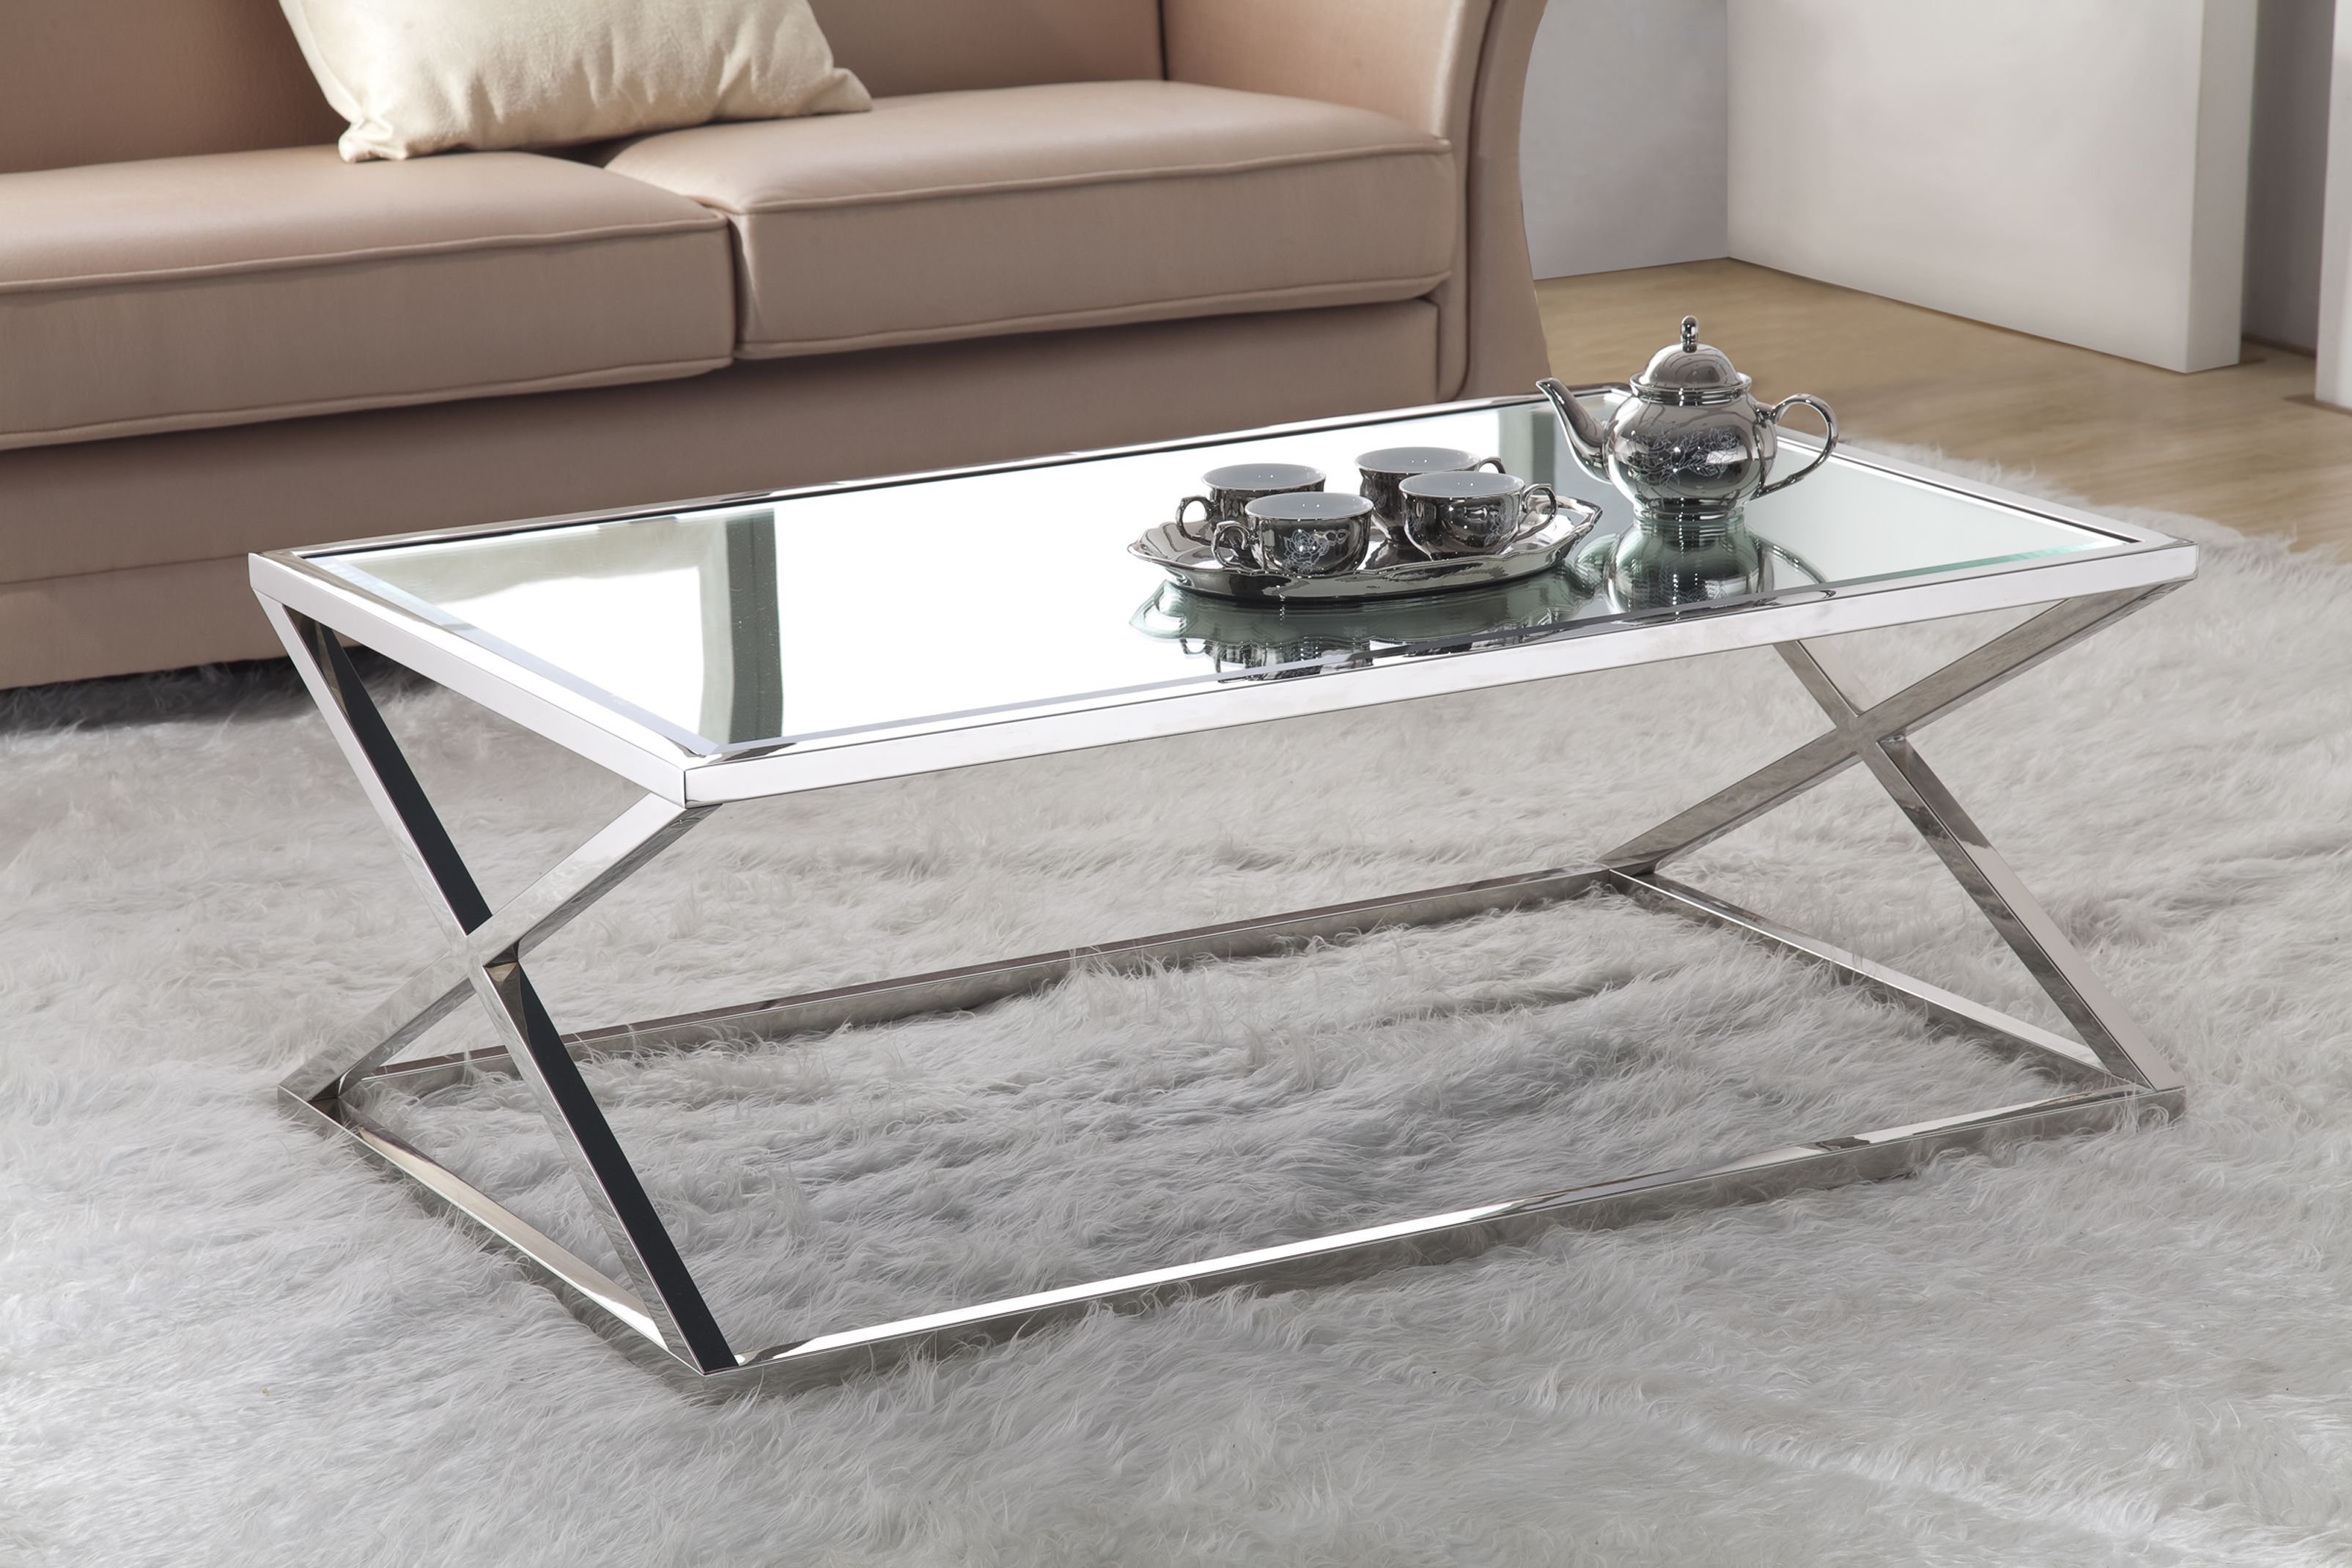 - Contemporary Glass Coffee Tables Adding More Style Into The Room